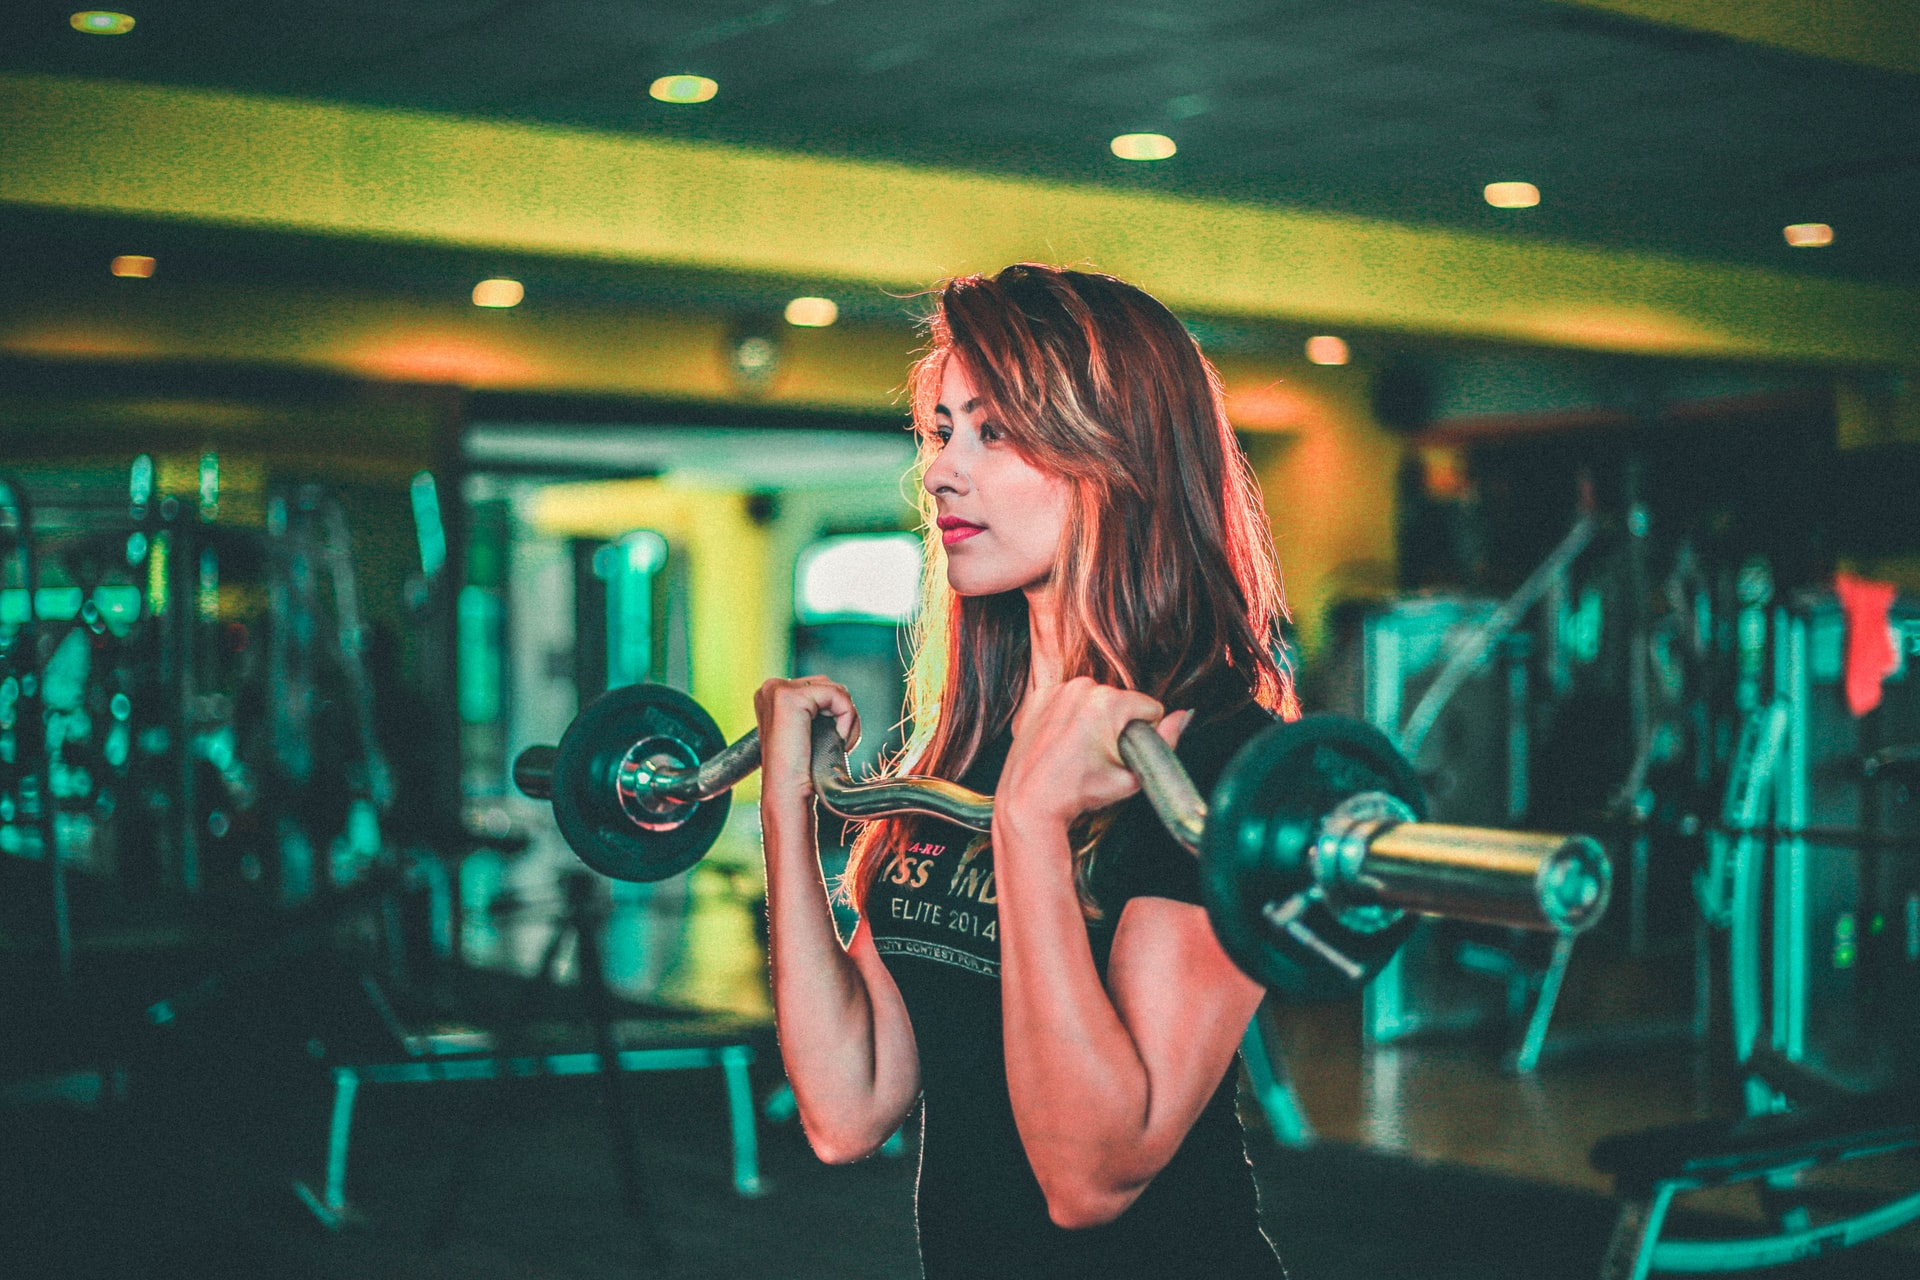 Fitness Training Tips To Keep In Mind During the COVID-19 Pandemic